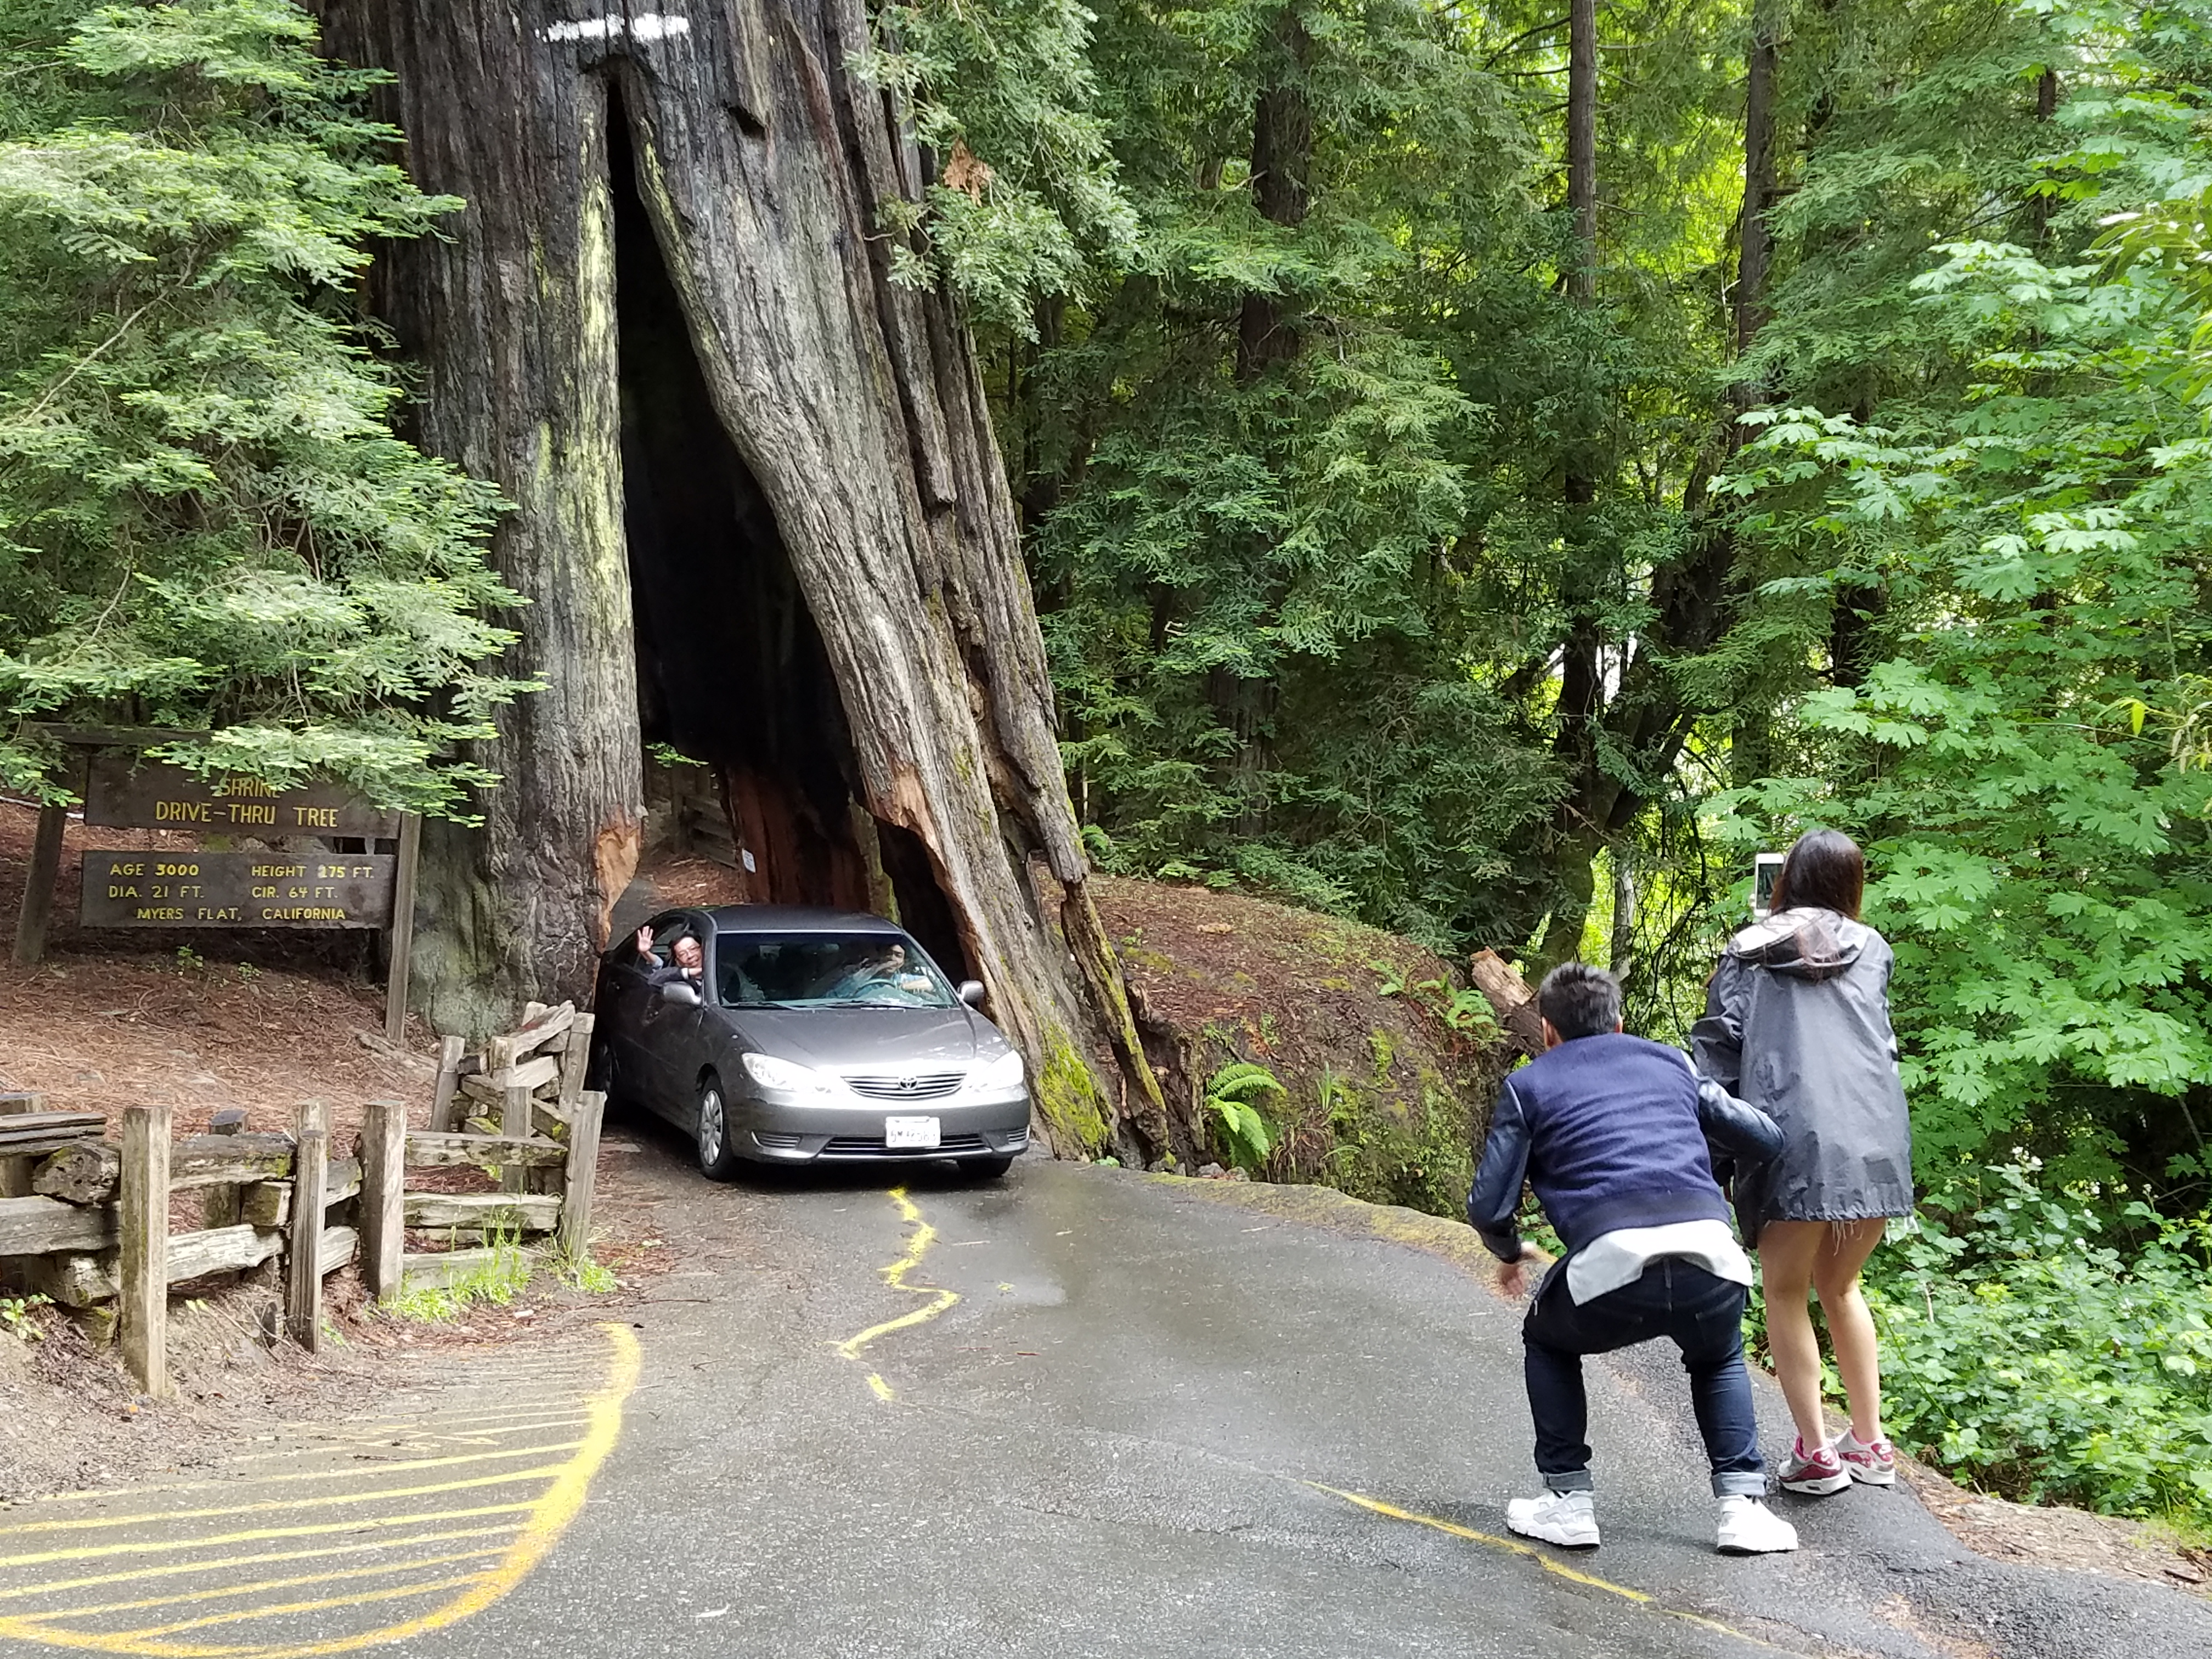 Drive Through Trees on